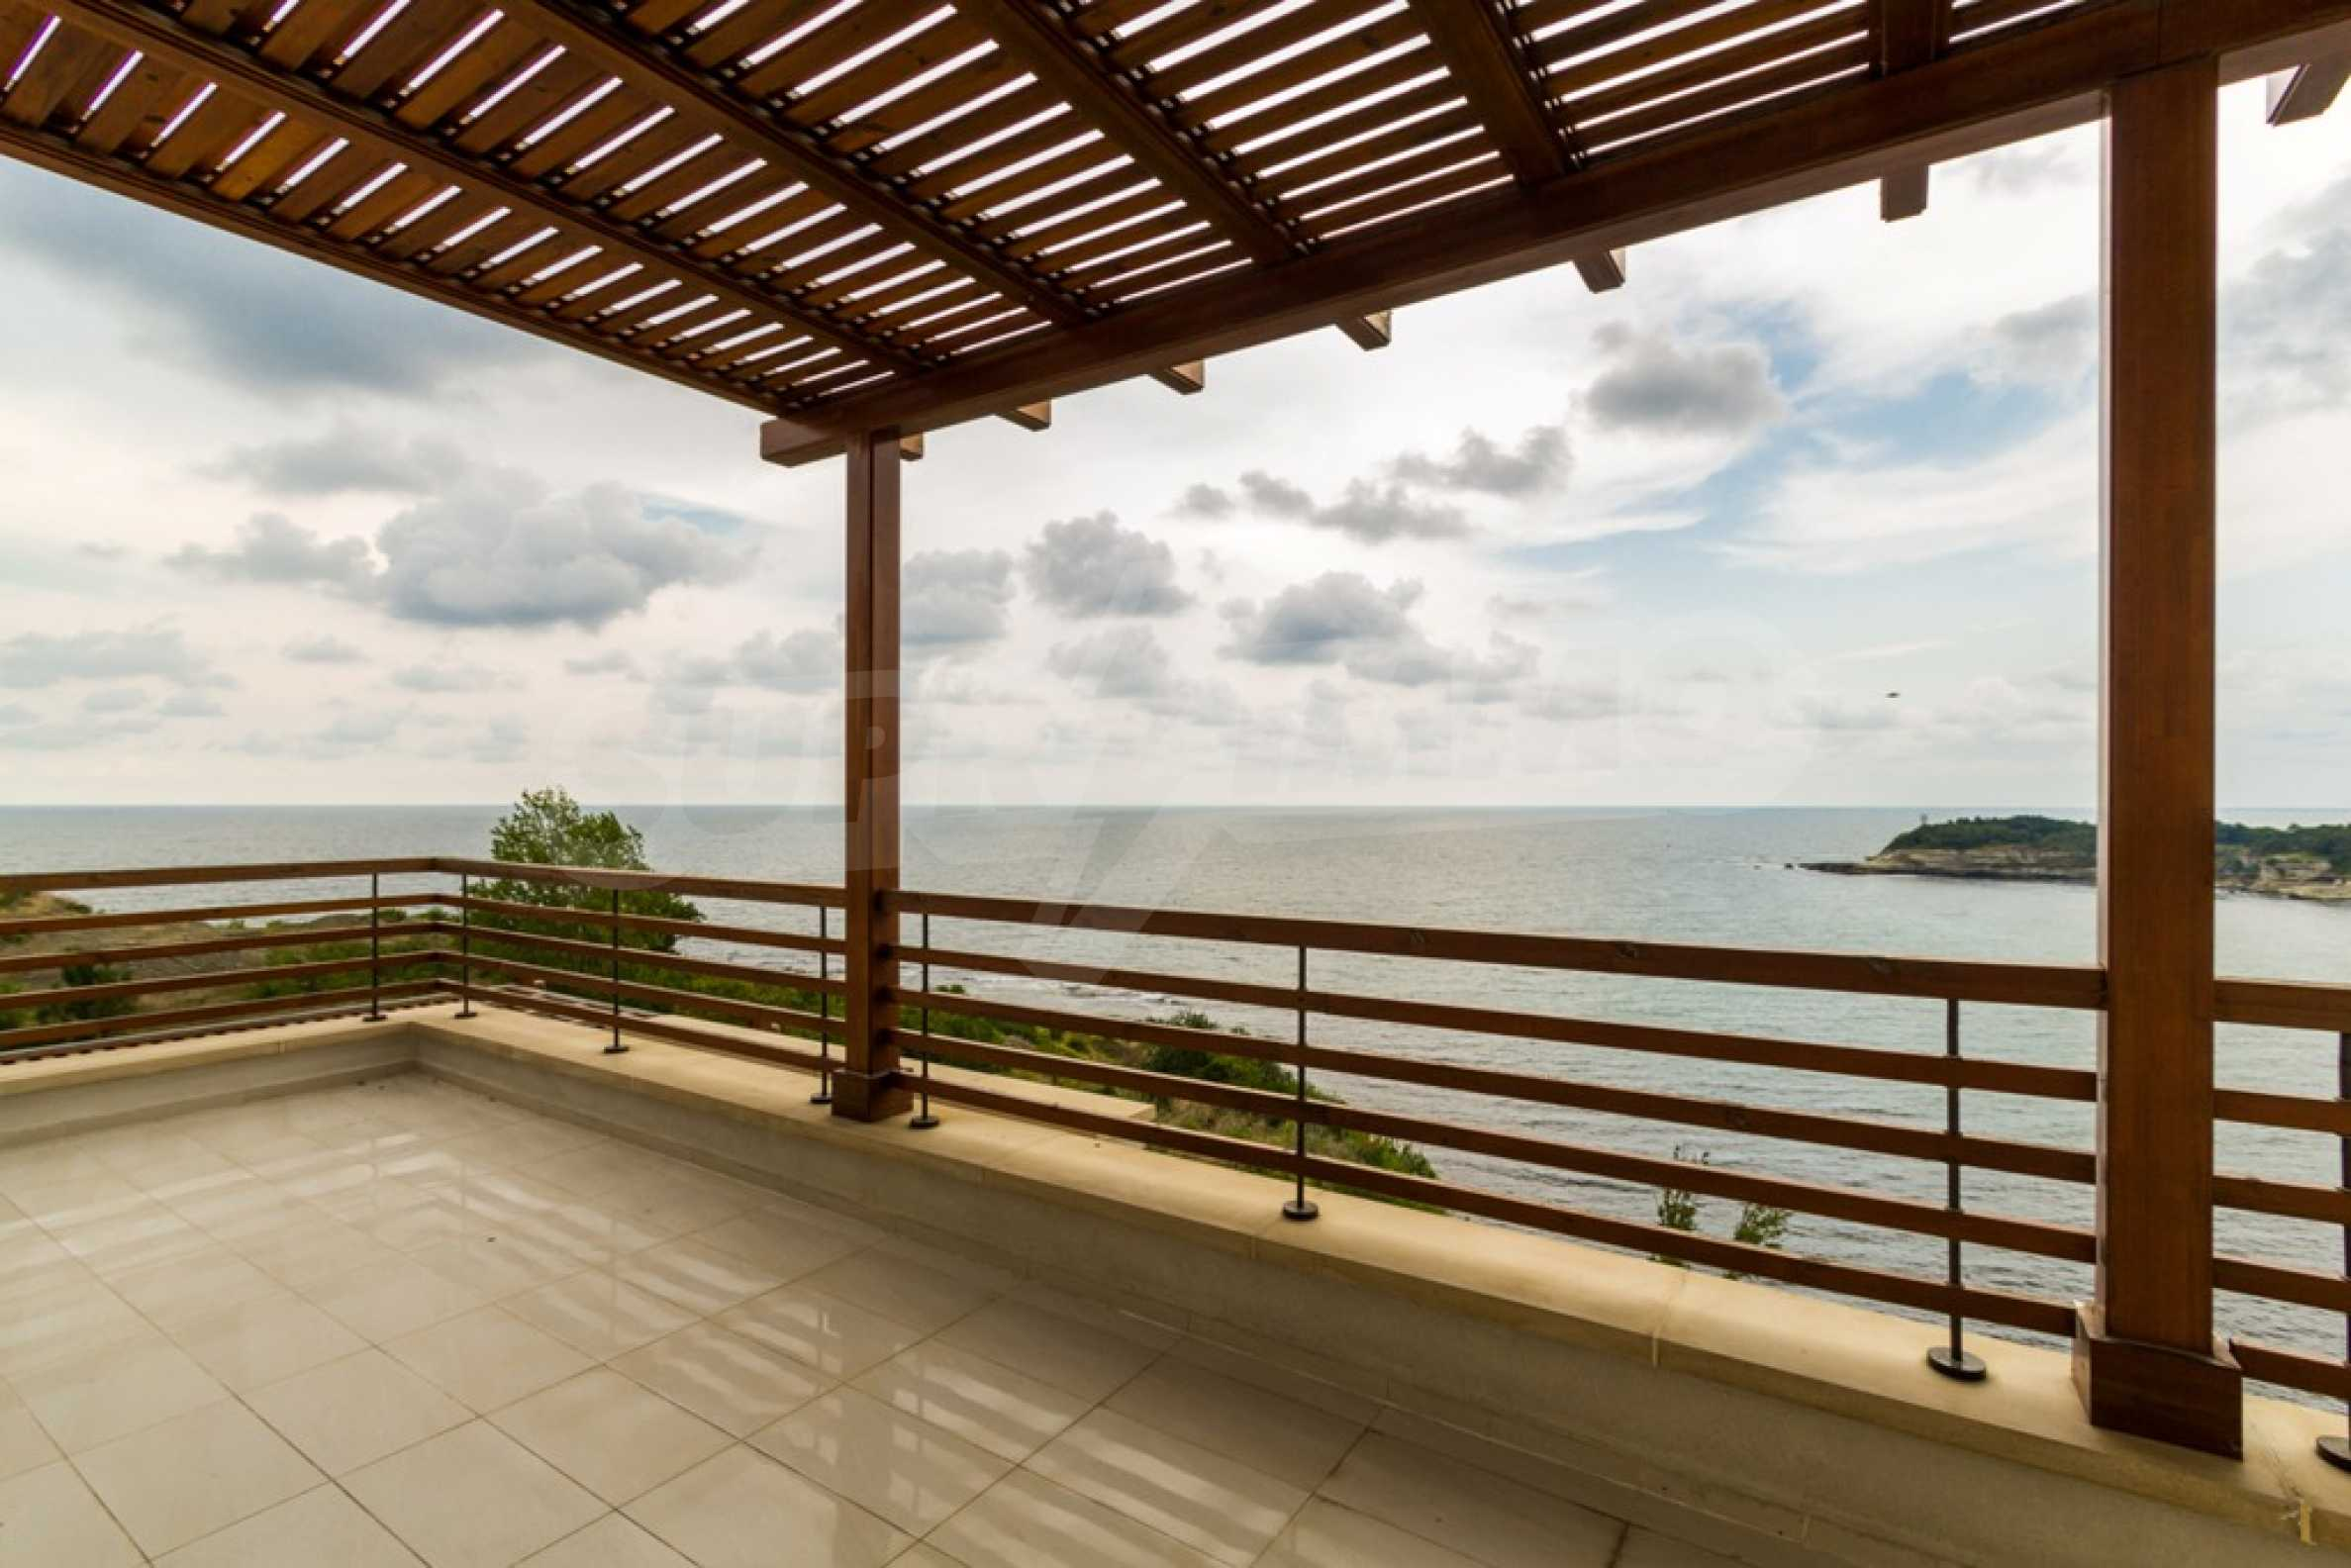 Two-bedroom apartment with sea views in Tsarevo resort